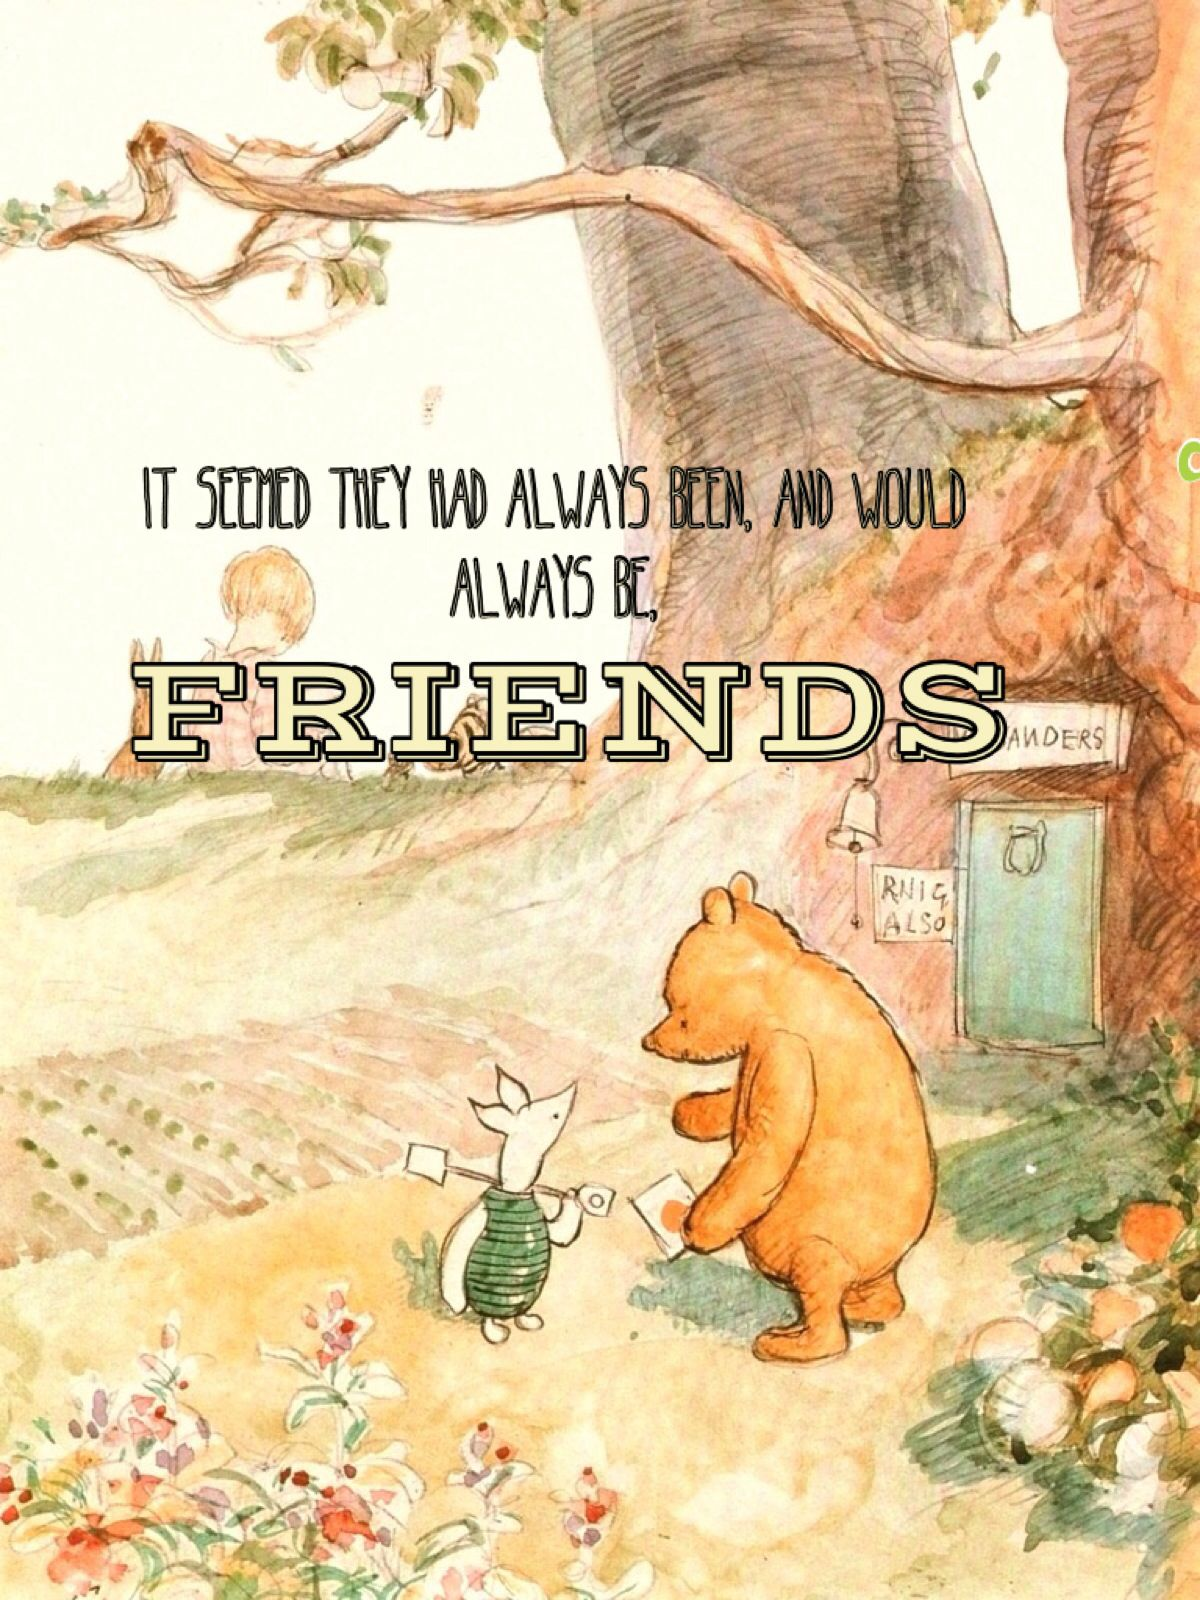 Quotes From Winnie The Pooh About Friendship Winnie The Pooh & Piglet 3  Ideas Worth Thinking About